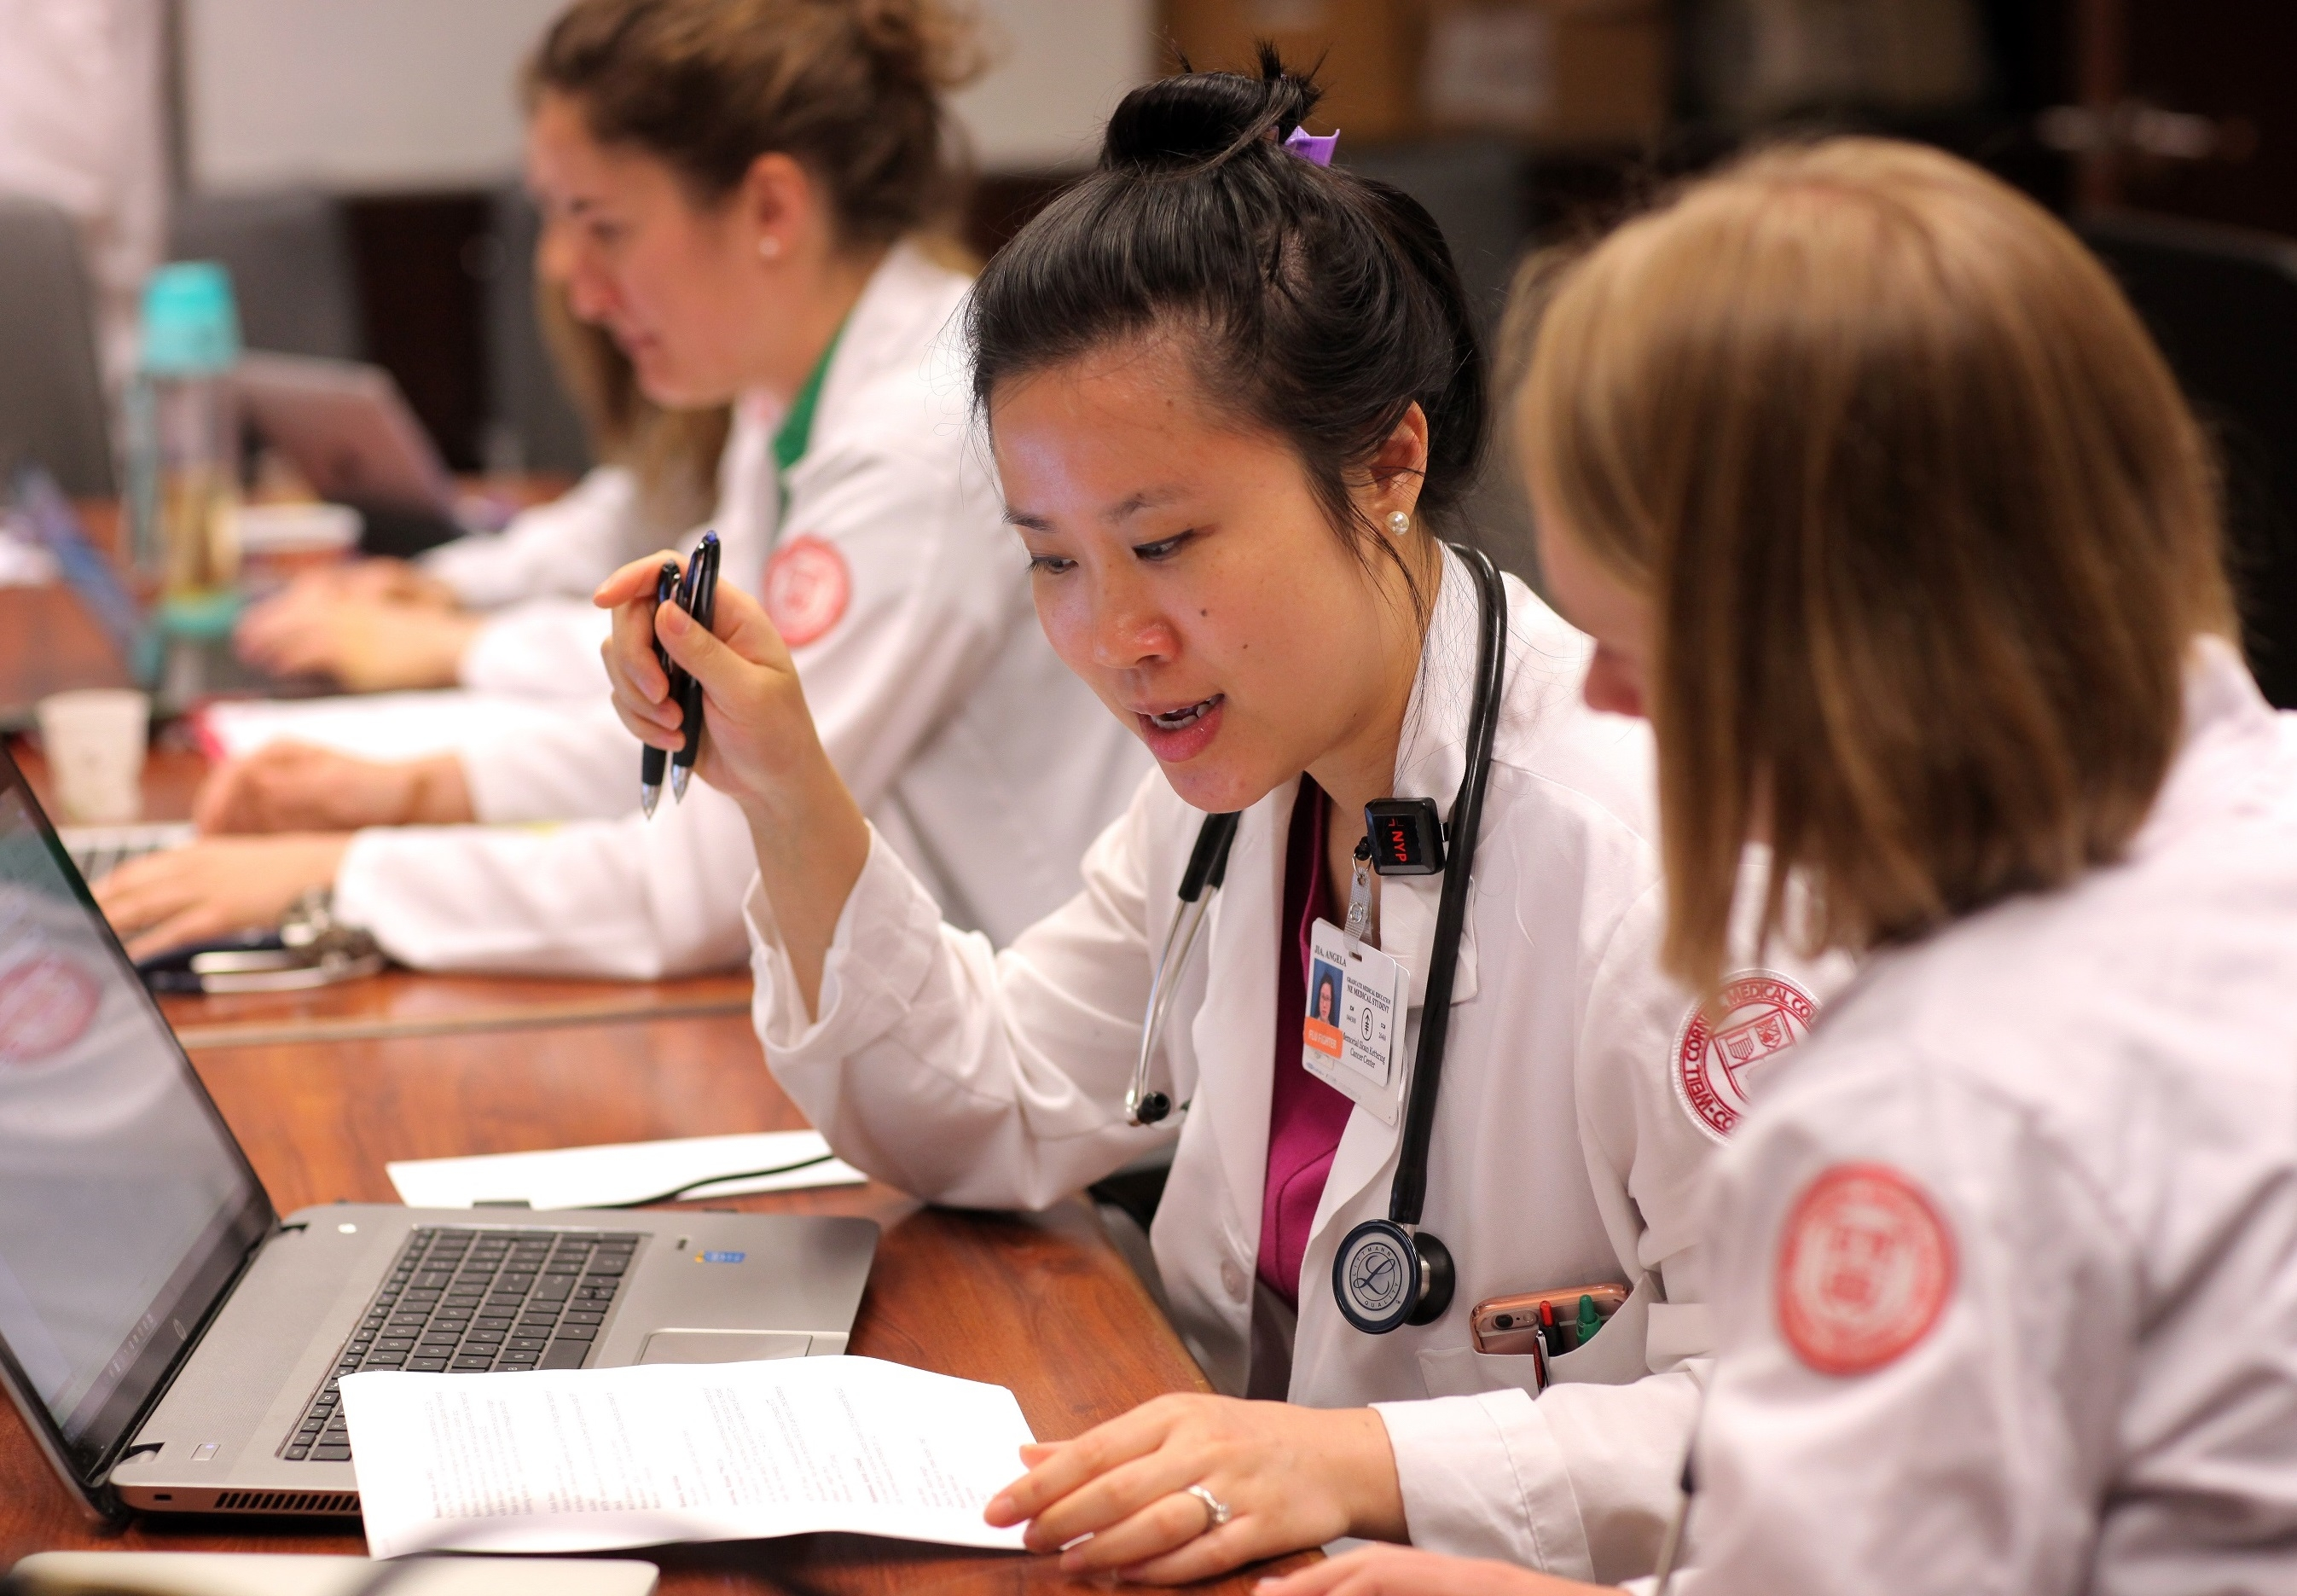 Female doctors studying. Credit: John Abbott